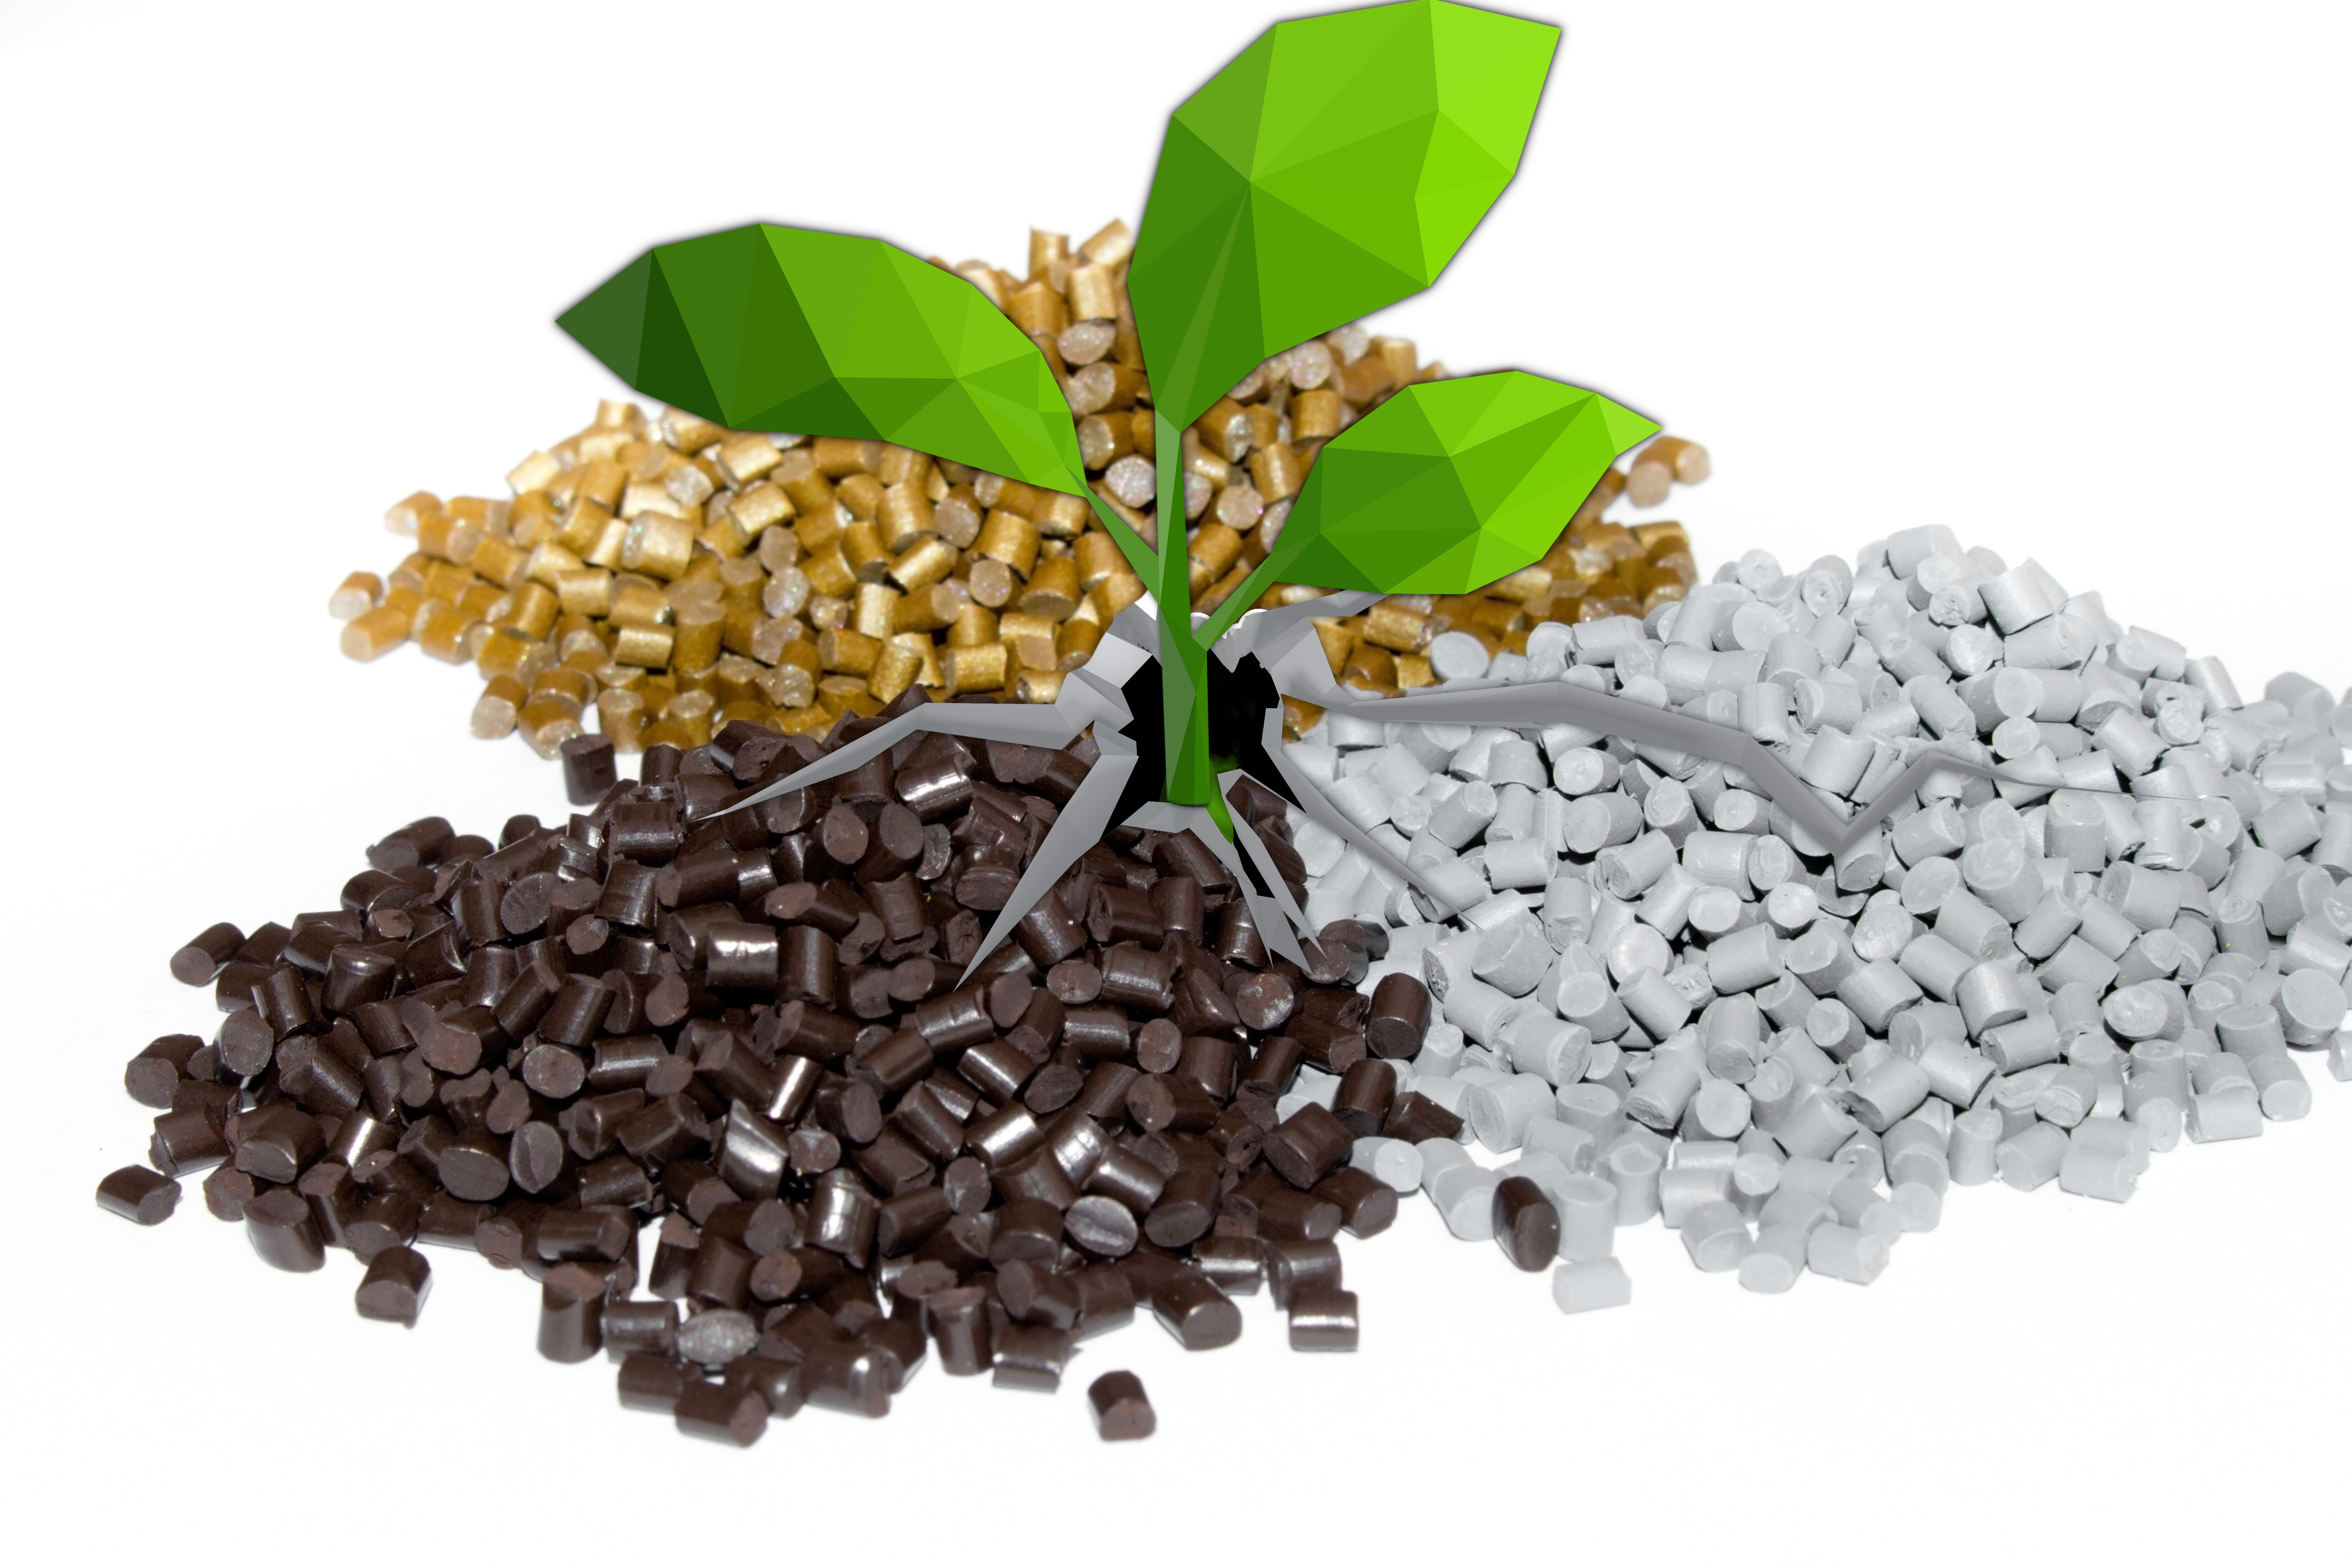 Entec Polymers Provides Resins and Compounds to Enable Your Sustainable Solutions